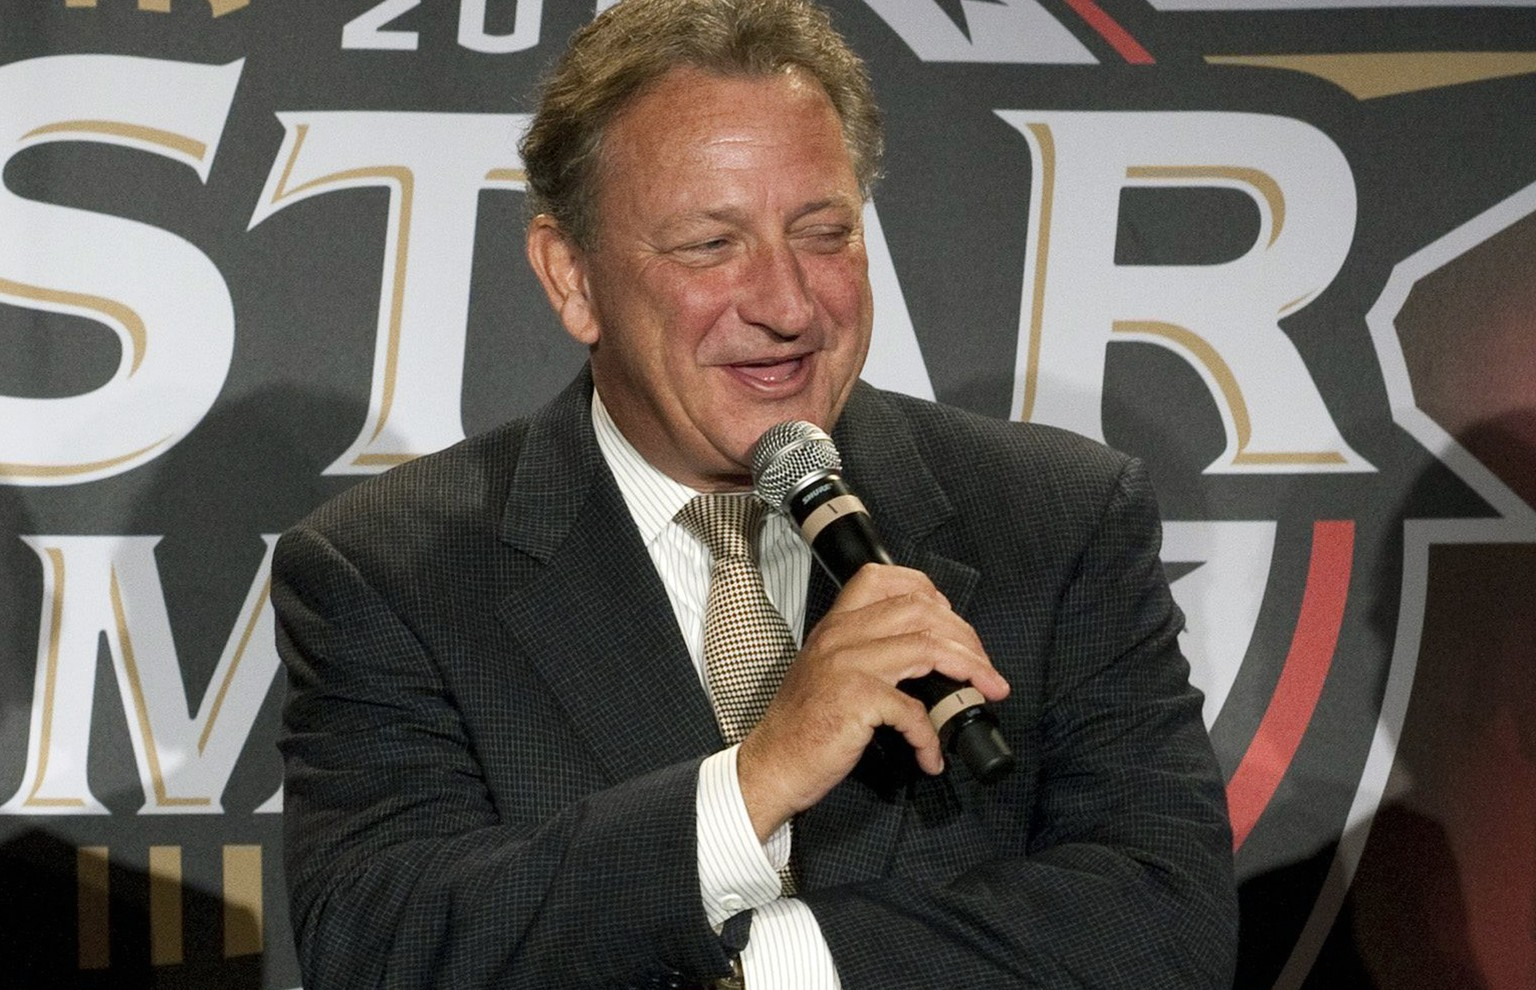 FILE - In this Sept. 15, 2010, file photo, Ottawa Senators owner Eugene Melnyk speaks during a news conference in Ottawa, Ontario. Melnyk has a few new priorities following a life-saving liver transplant — and a renewed focus on some old ones, too. Away from the rink, he's taking up a close-to-home fight. Melnyk launched his new foundation, The Organ Project, on Wednesday, Feb. 15, 2017, with an aim on ending waitlists for transplant patient.  (Adrian Wyld/The Canadian Press via AP, File)